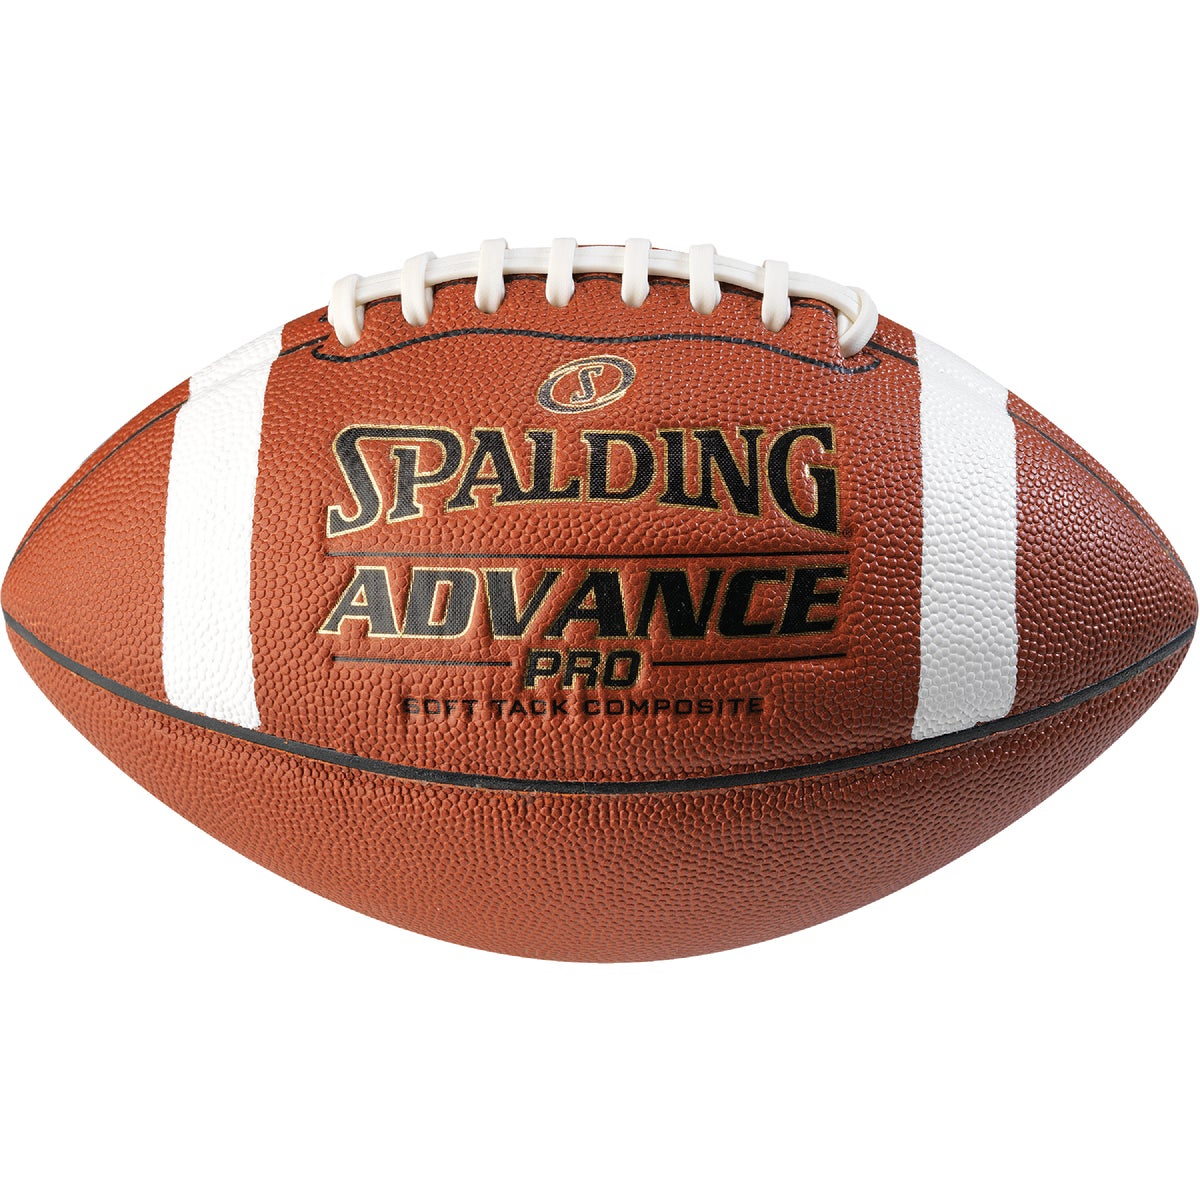 J5V ADVANCE FOOTBALL - 62-971 by Spalding Sports